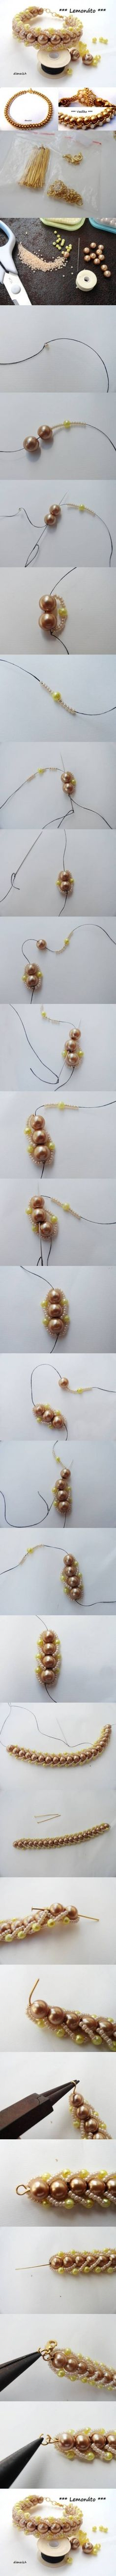 DIY Beads and Beads Bracelet DIY Projects